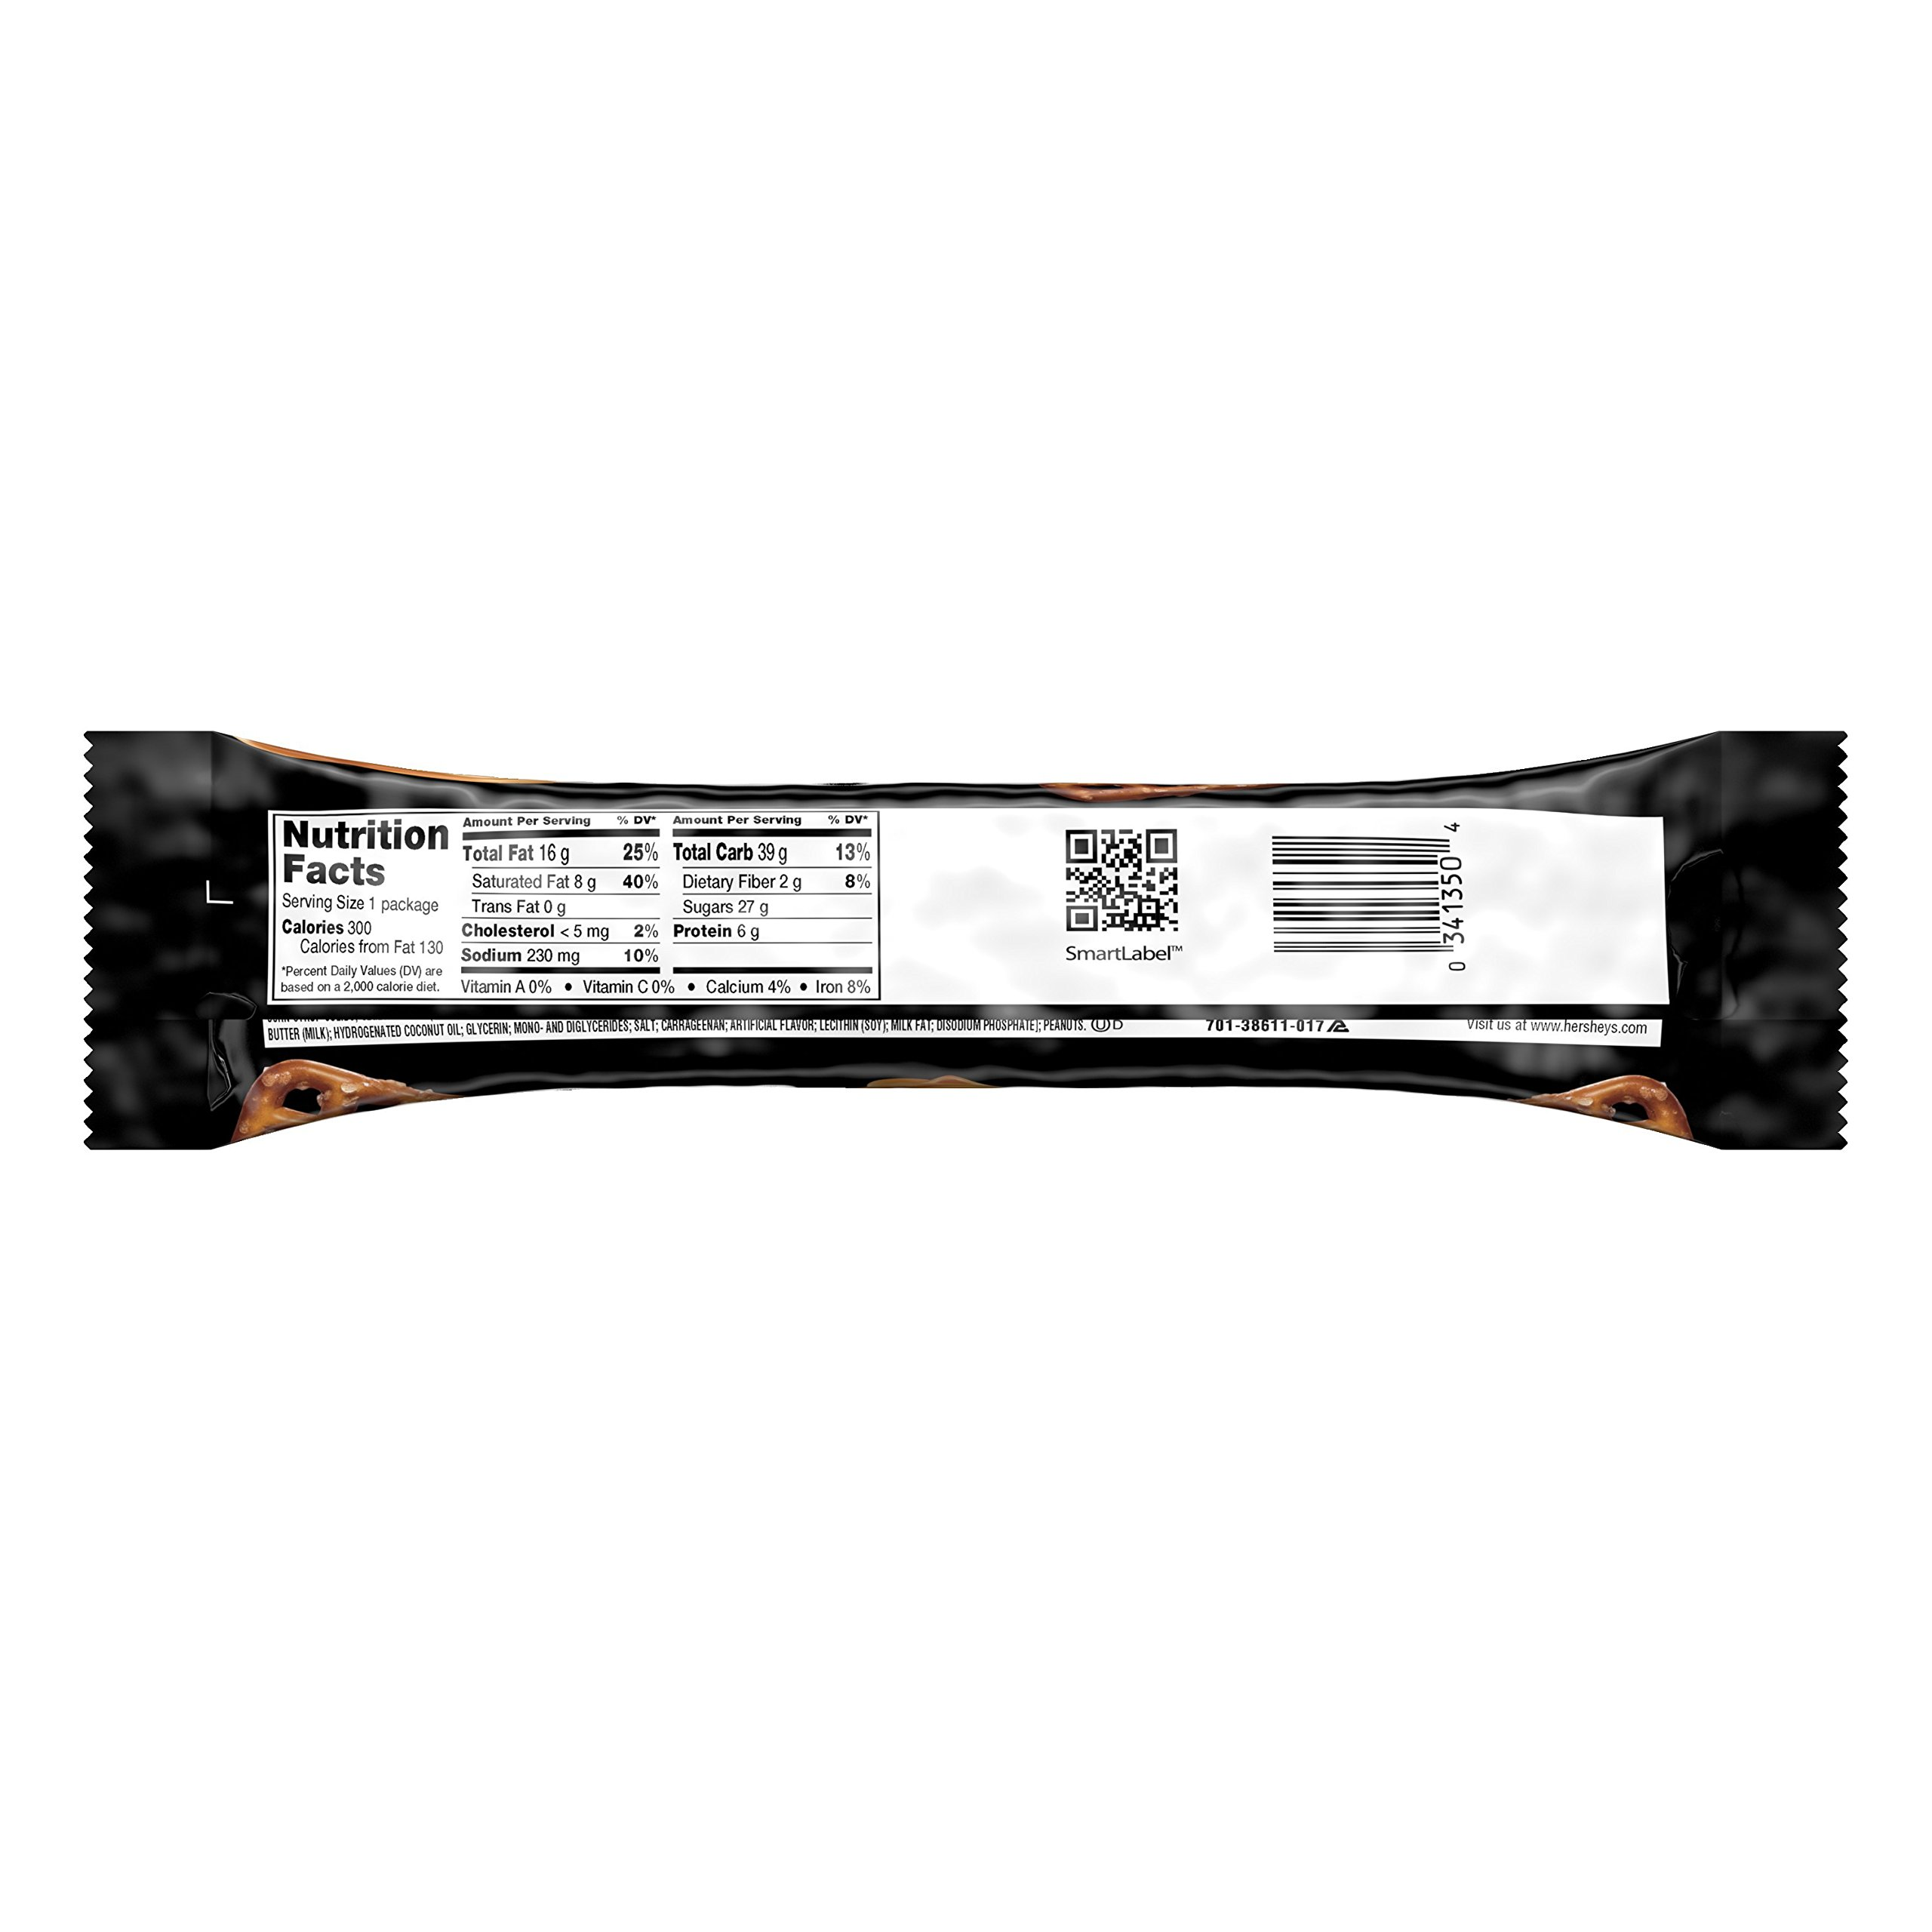 TAKE5 Chocolate Candy Bar, King Size (Pack of 18) by Take 5 (Image #4)